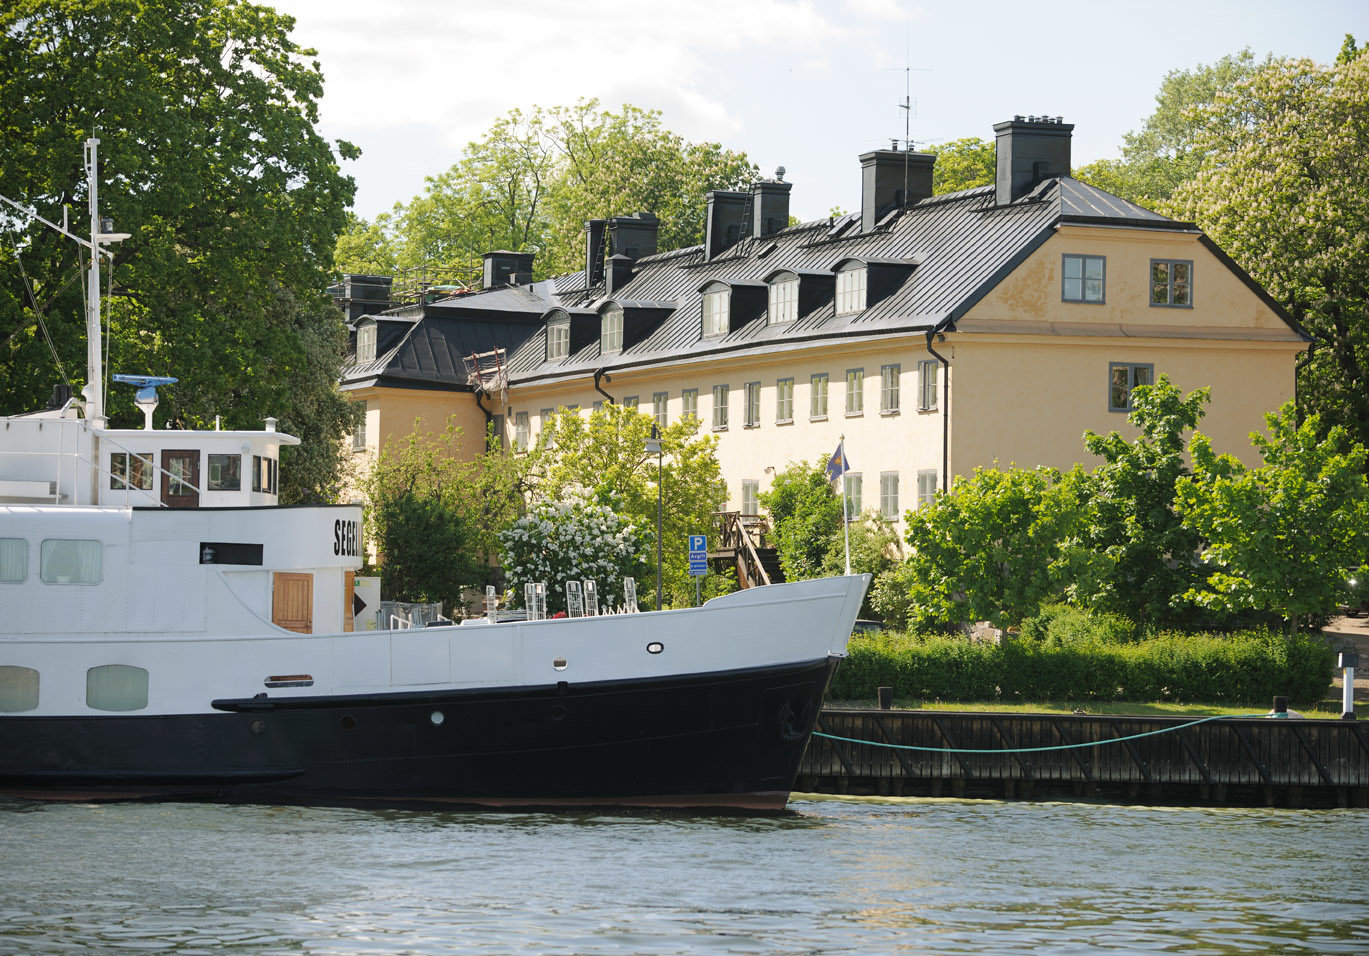 Hotels Stockholm Sweden water tree outdoor Boat waterway water transportation watercraft motor ship ship vehicle tugboat house channel Canal River bayou